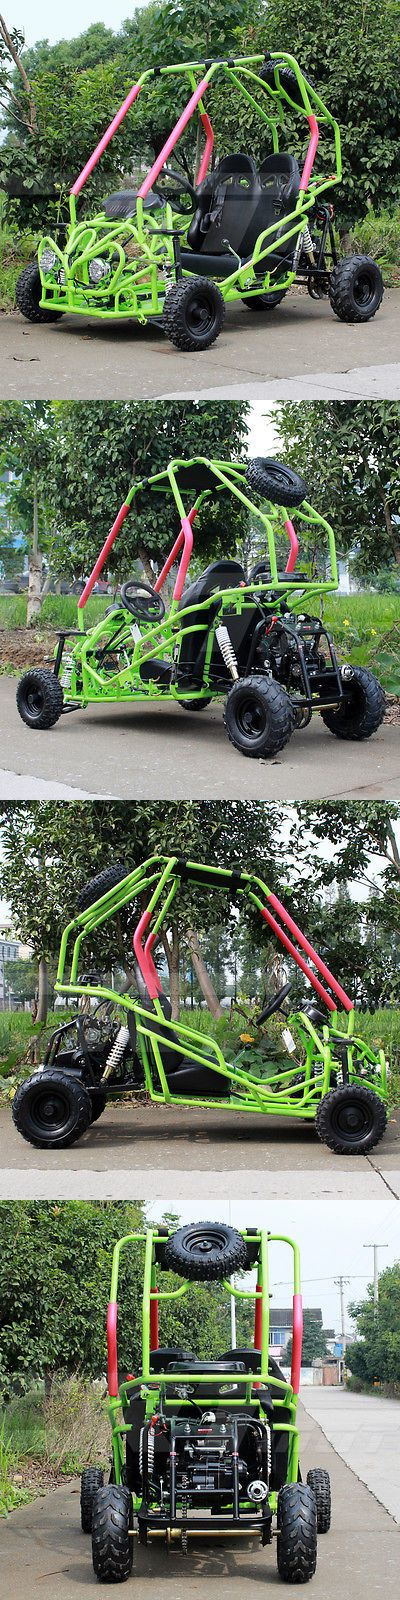 Complete Go-Karts and Frames 64656: Df-Moto 110Cc Go Kart Green Df110gkb Steel Wheels Kids Buggy Go Karts 4 Wheelers BUY IT NOW ONLY: $995.95